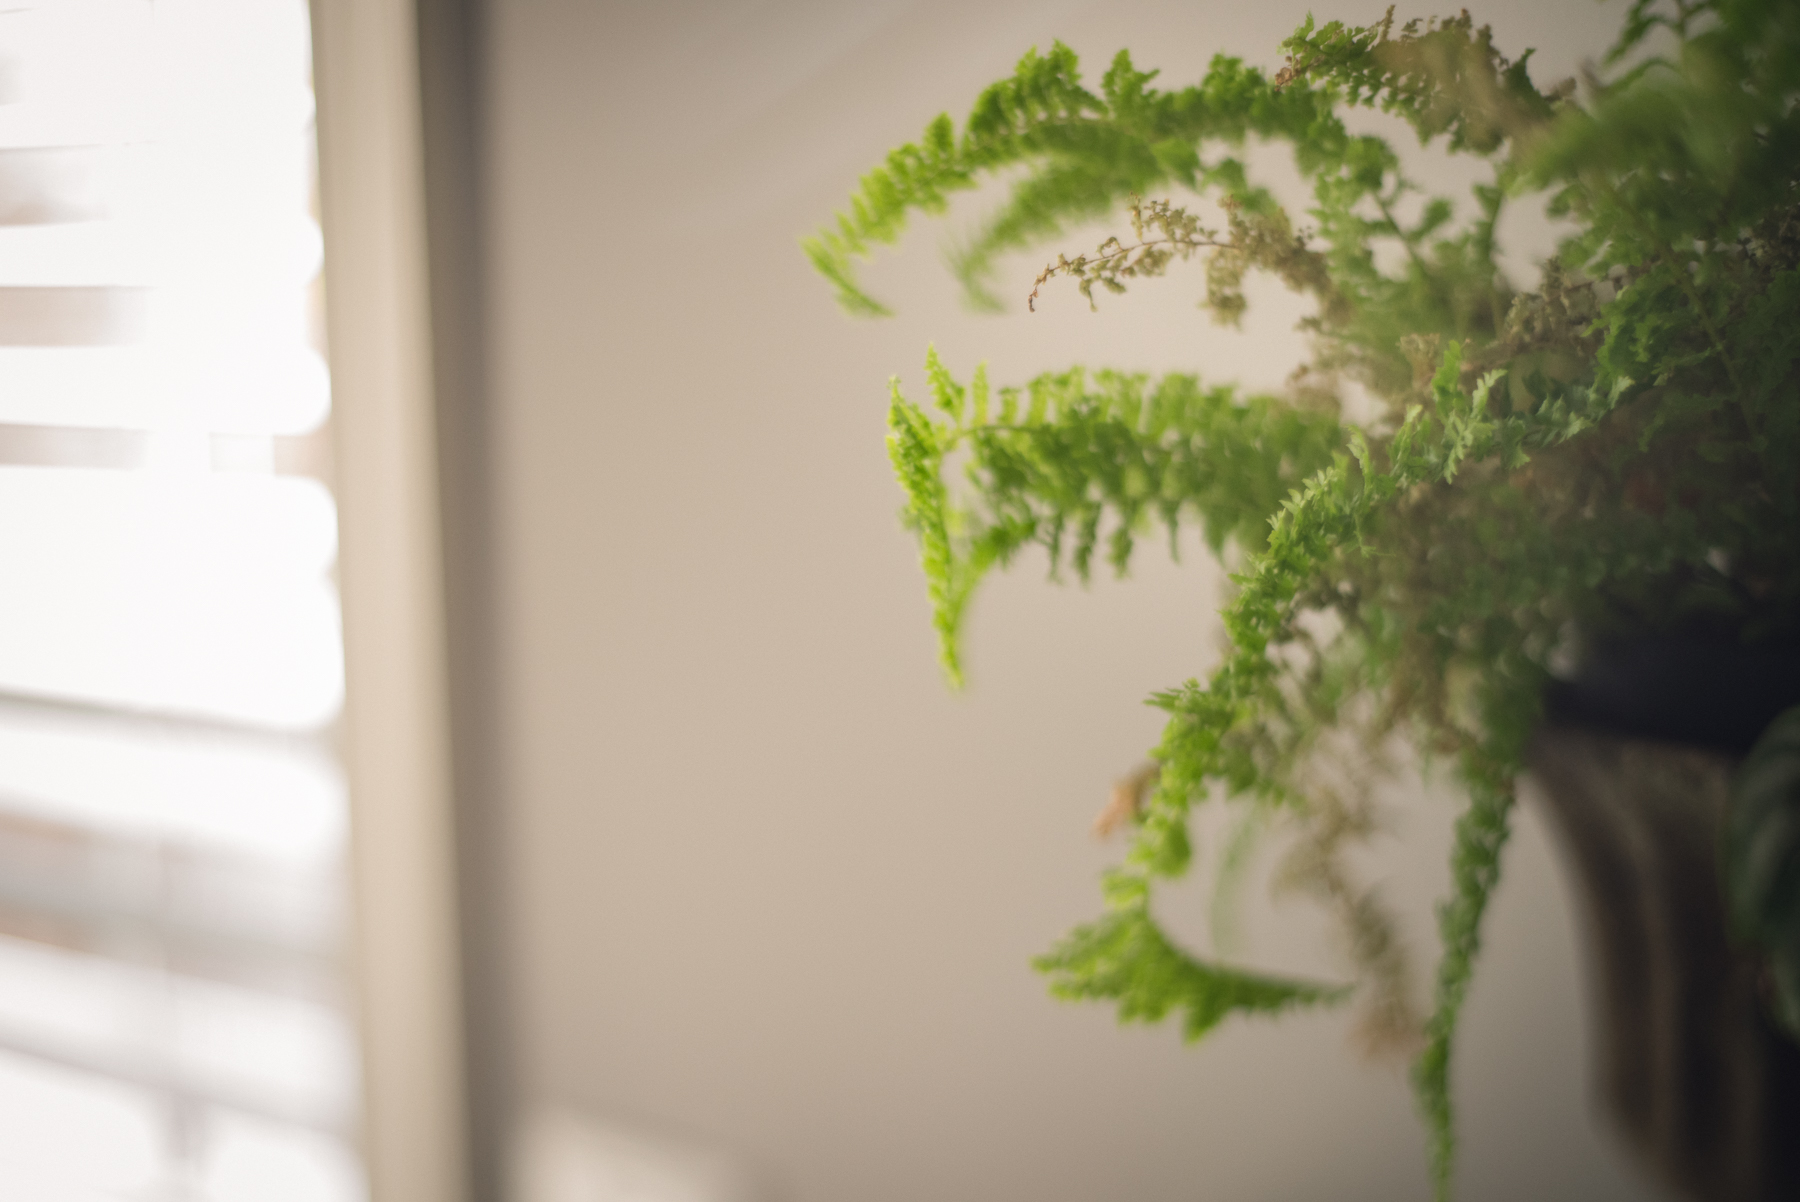 photo of fern freelensed in indoor natural light by megan cieloha